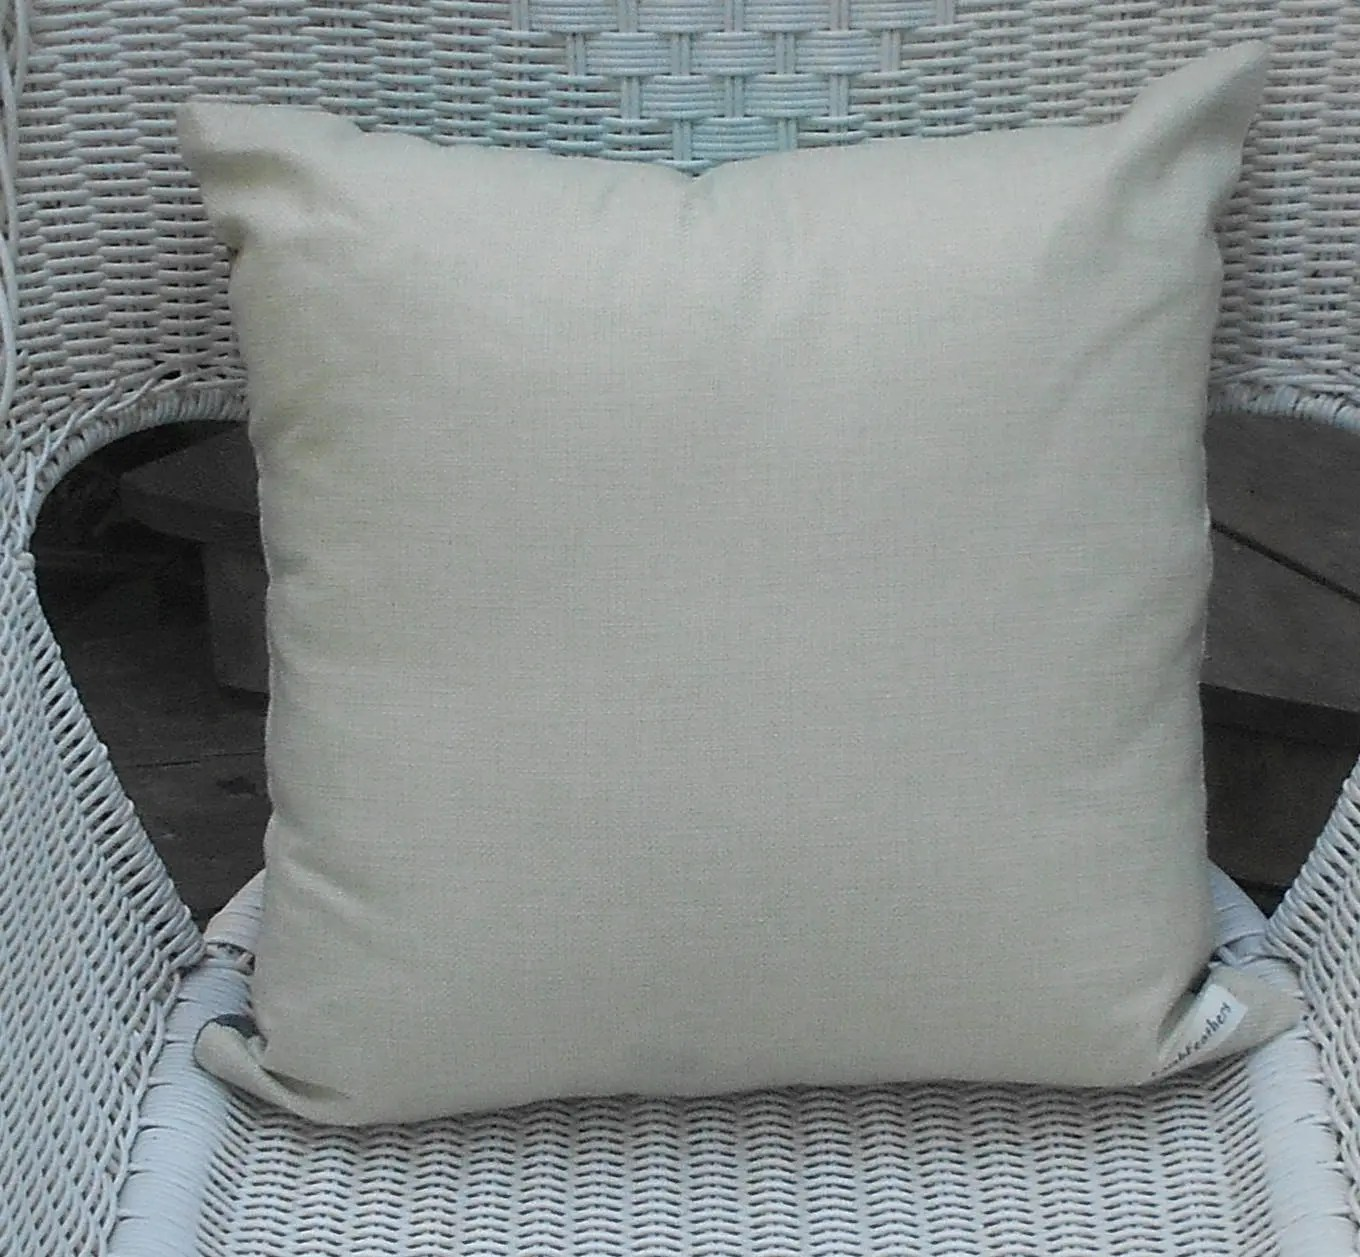 Couch Shabby Chic Festival Pillow Pillow Throw Pillow Couch Pillow Cushion